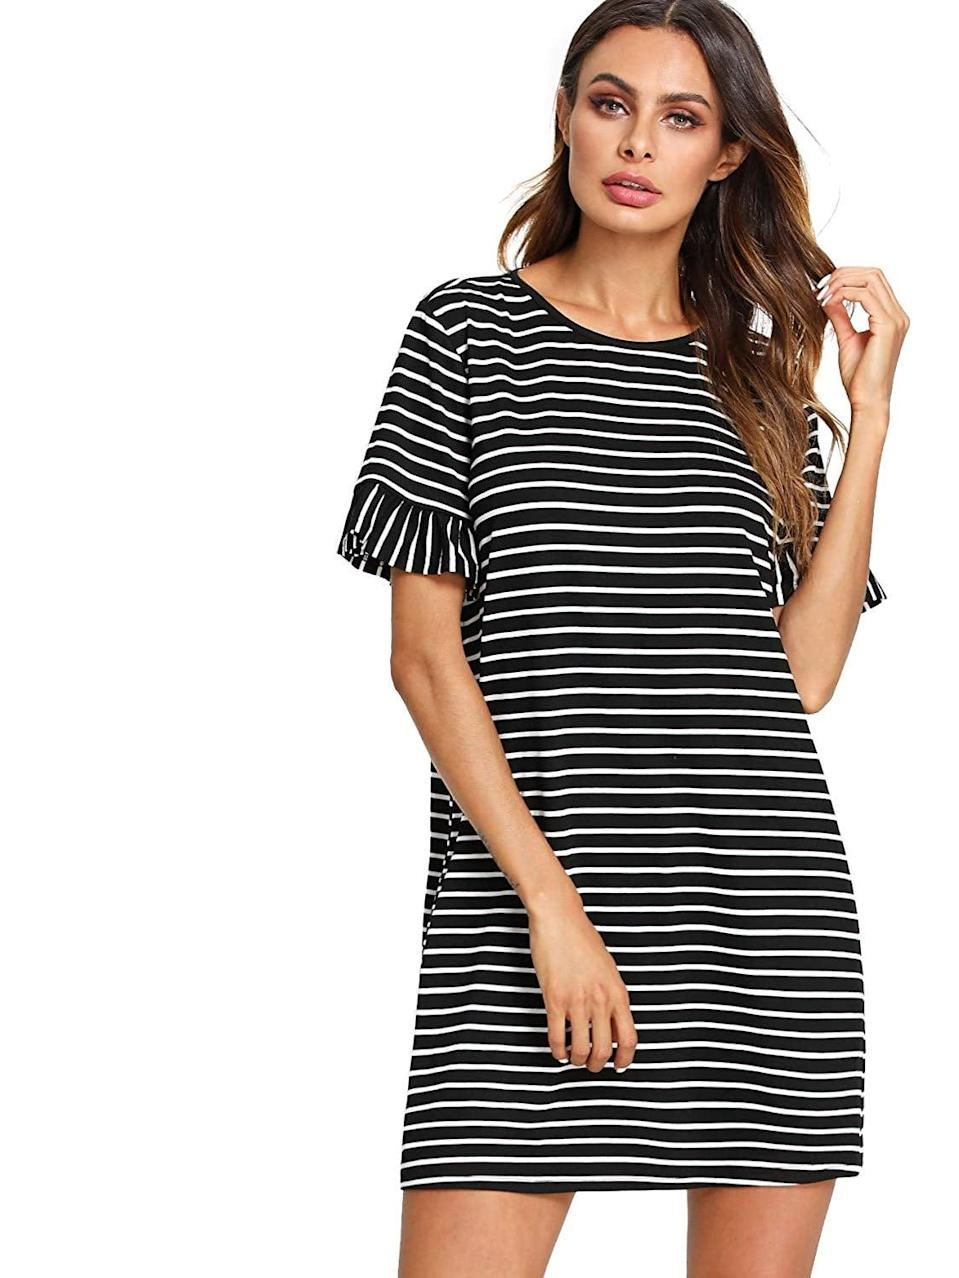 <p>Style this <span>Floerns Striped Short-Sleeve T-Shirt Dress</span> ($18) with a denim jacket and some sneakers for an easygoing look.</p>